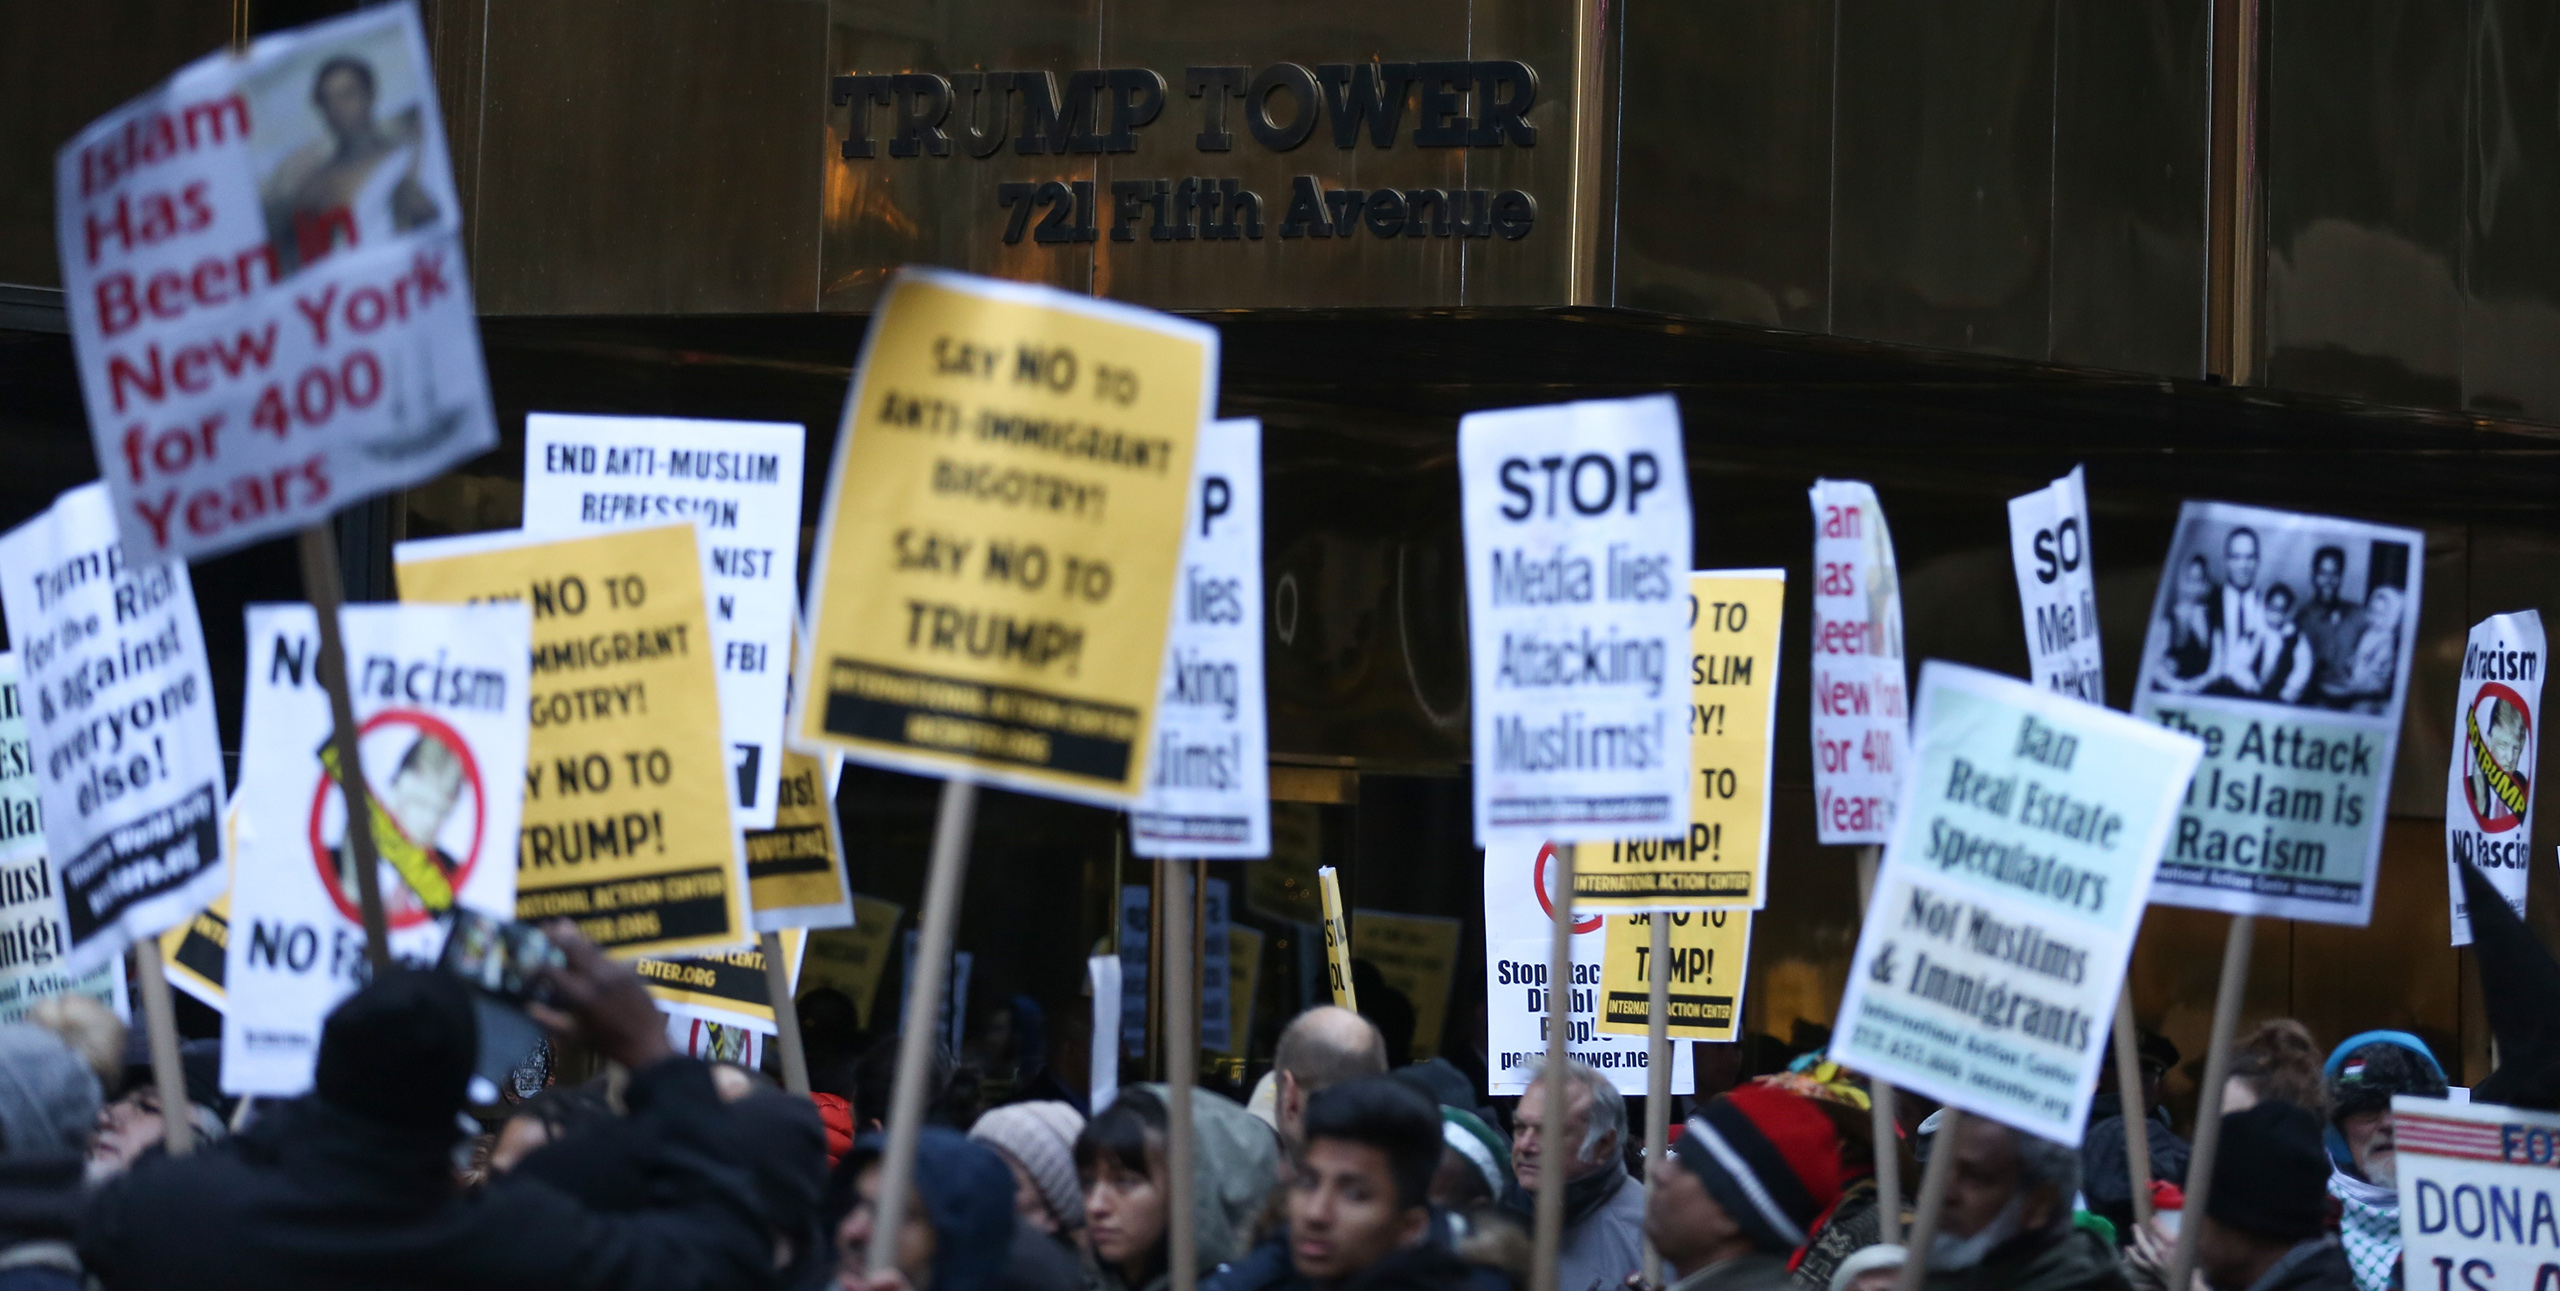 People stage a protest against Donald Trump after he made comments stating that he wants a 'total and complete shutdown of Muslims entering the United States' in front of the Trump Tower at 5th Avenue in New York City on Dec. 20, 2015.